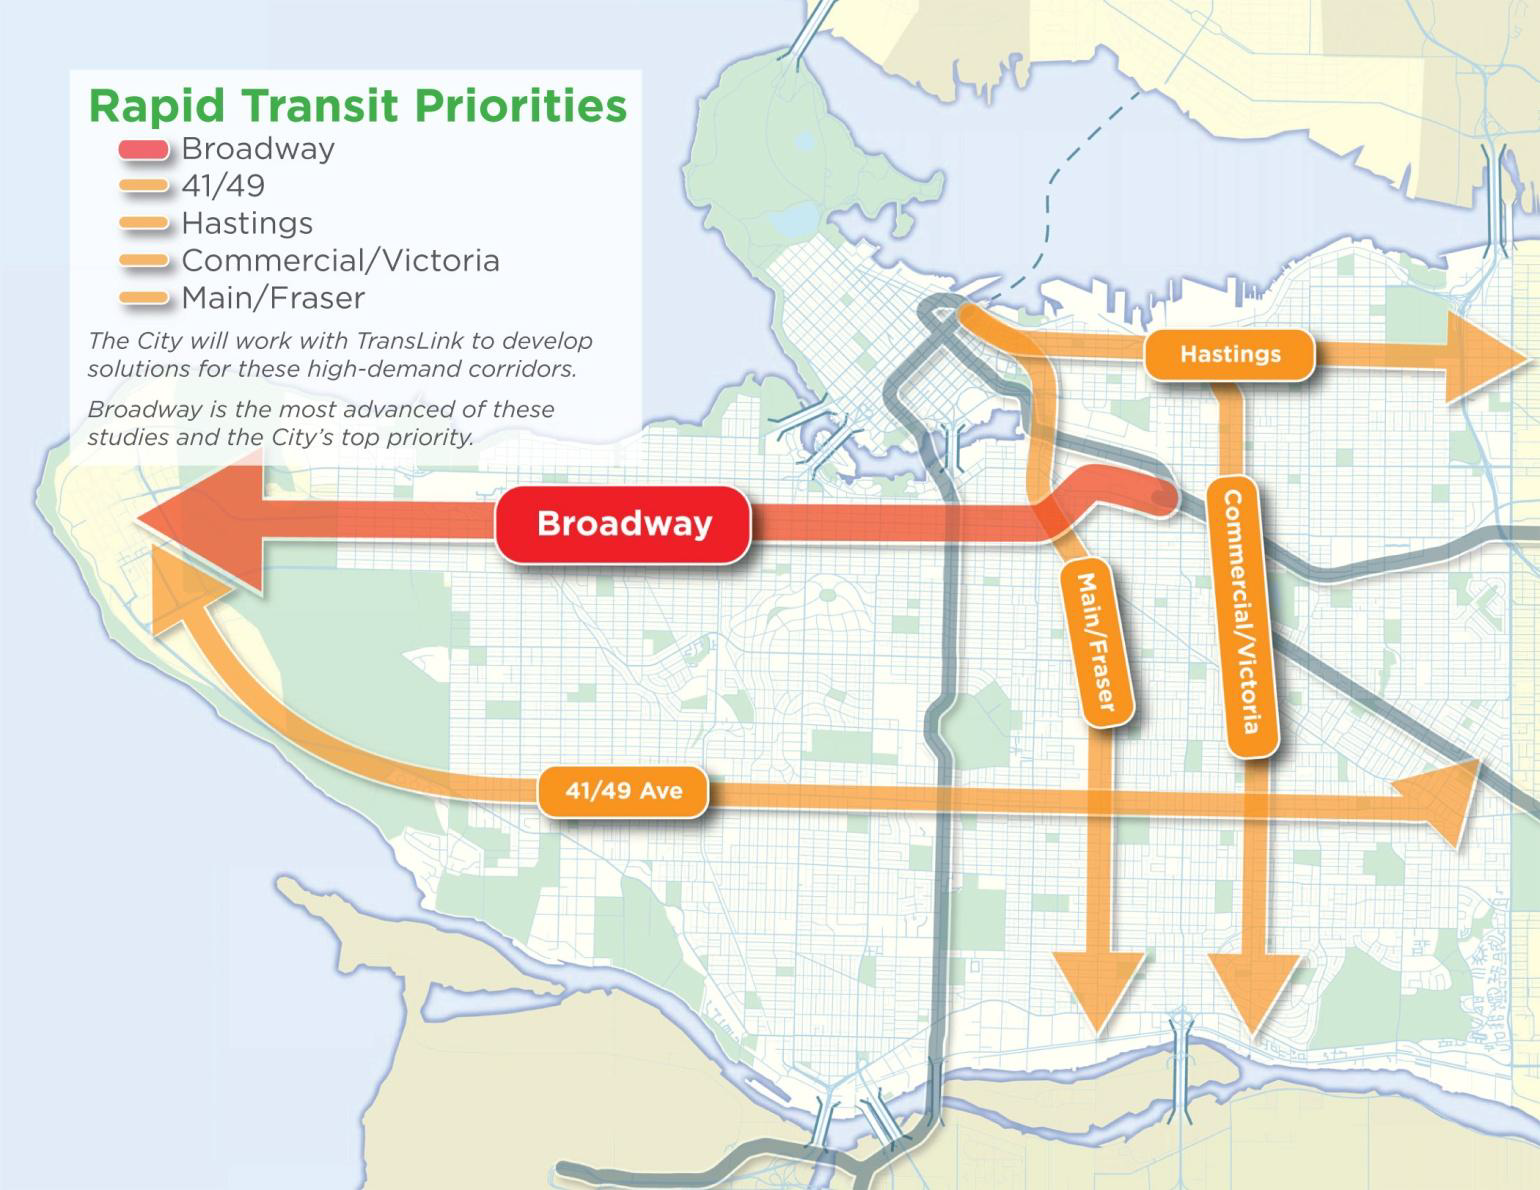 Vancouvers Transportation 2040 Plan What are they NOT telling us